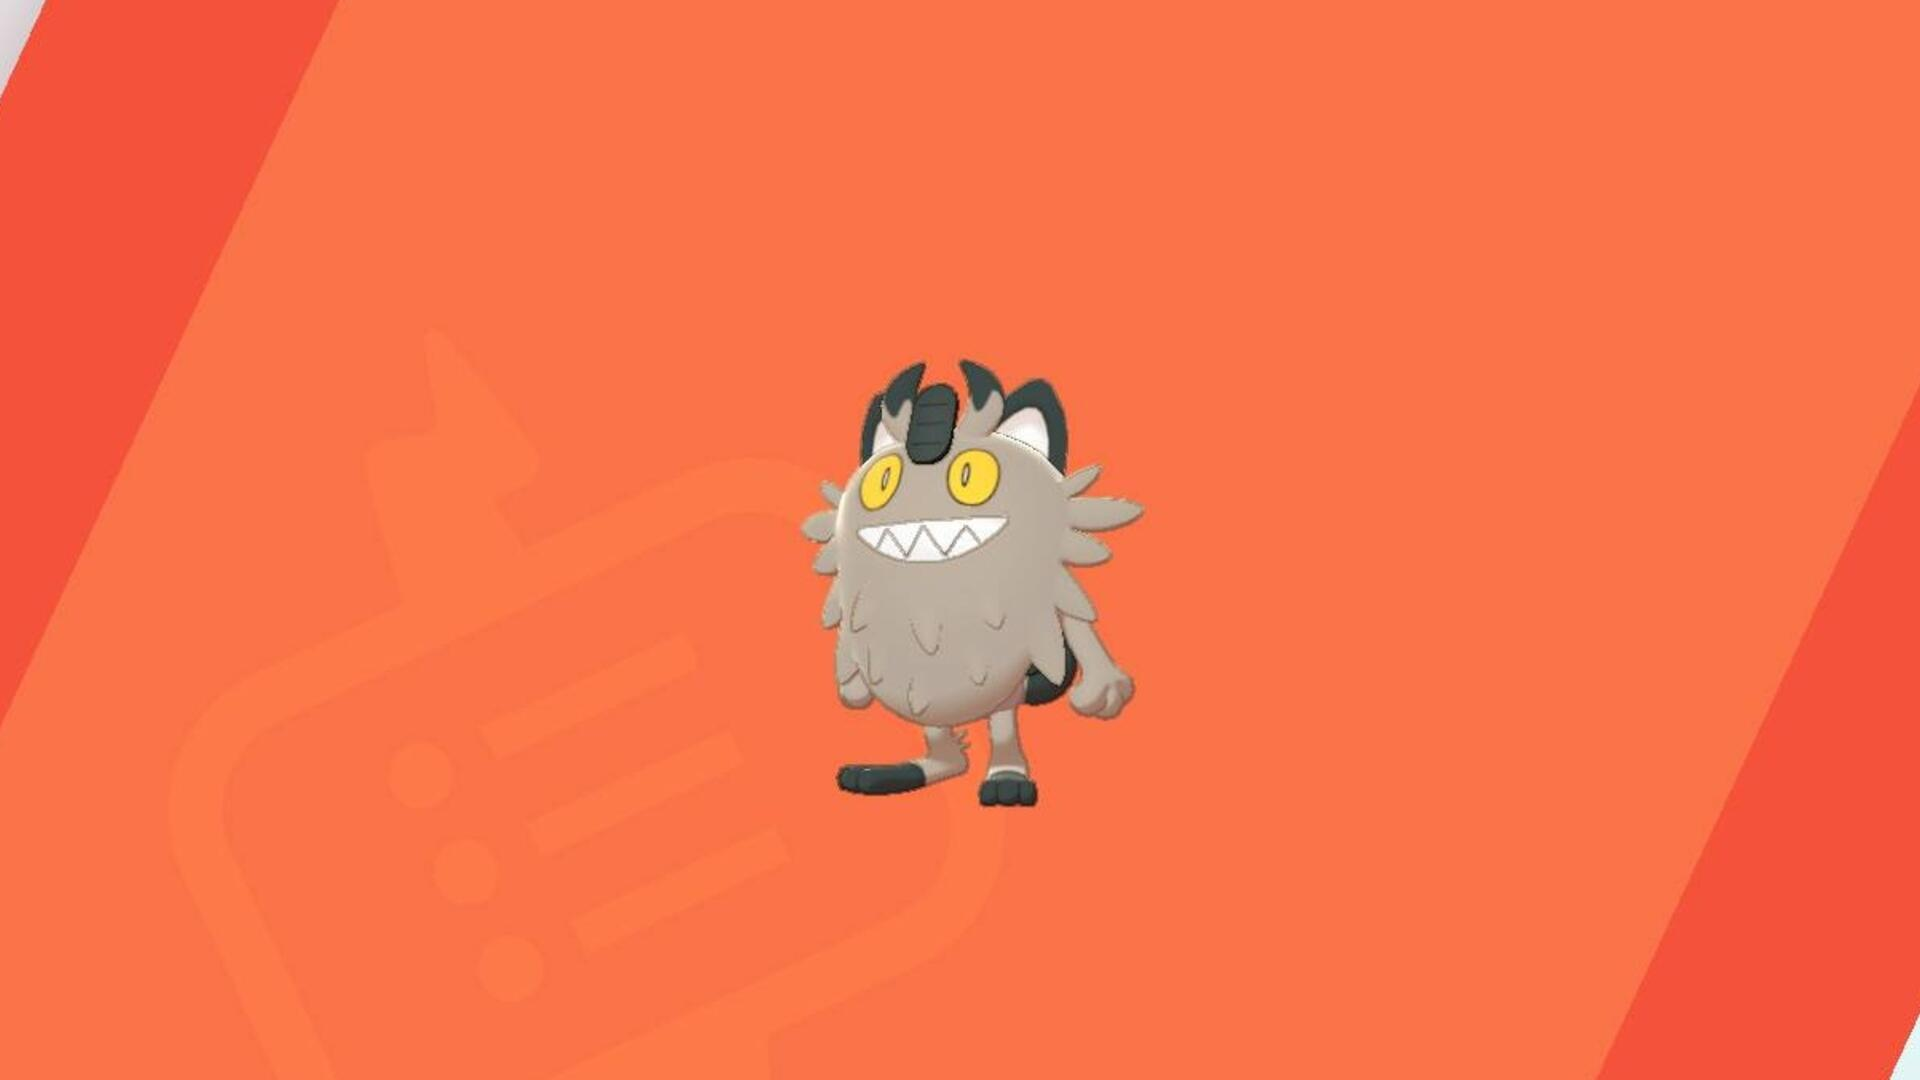 Galarian Meowth: Oh My God, What the Hell